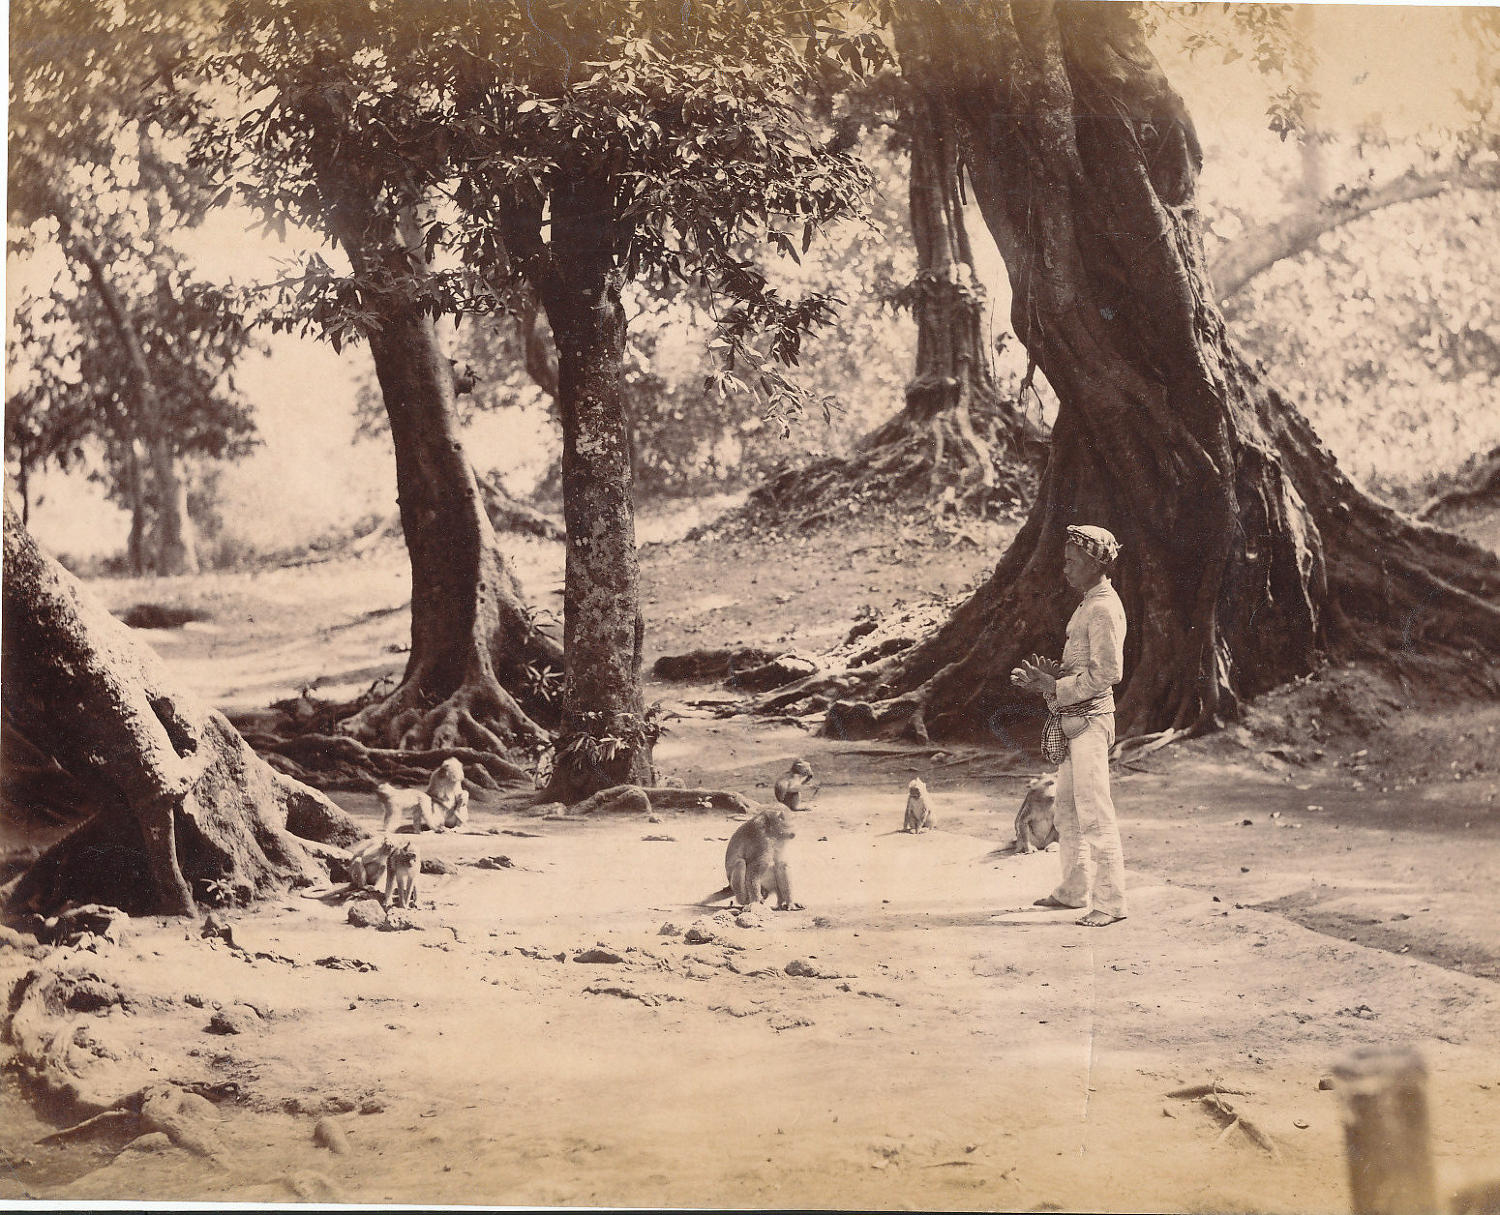 Feeding the Monkeys  Batavia Indonesia . C1885